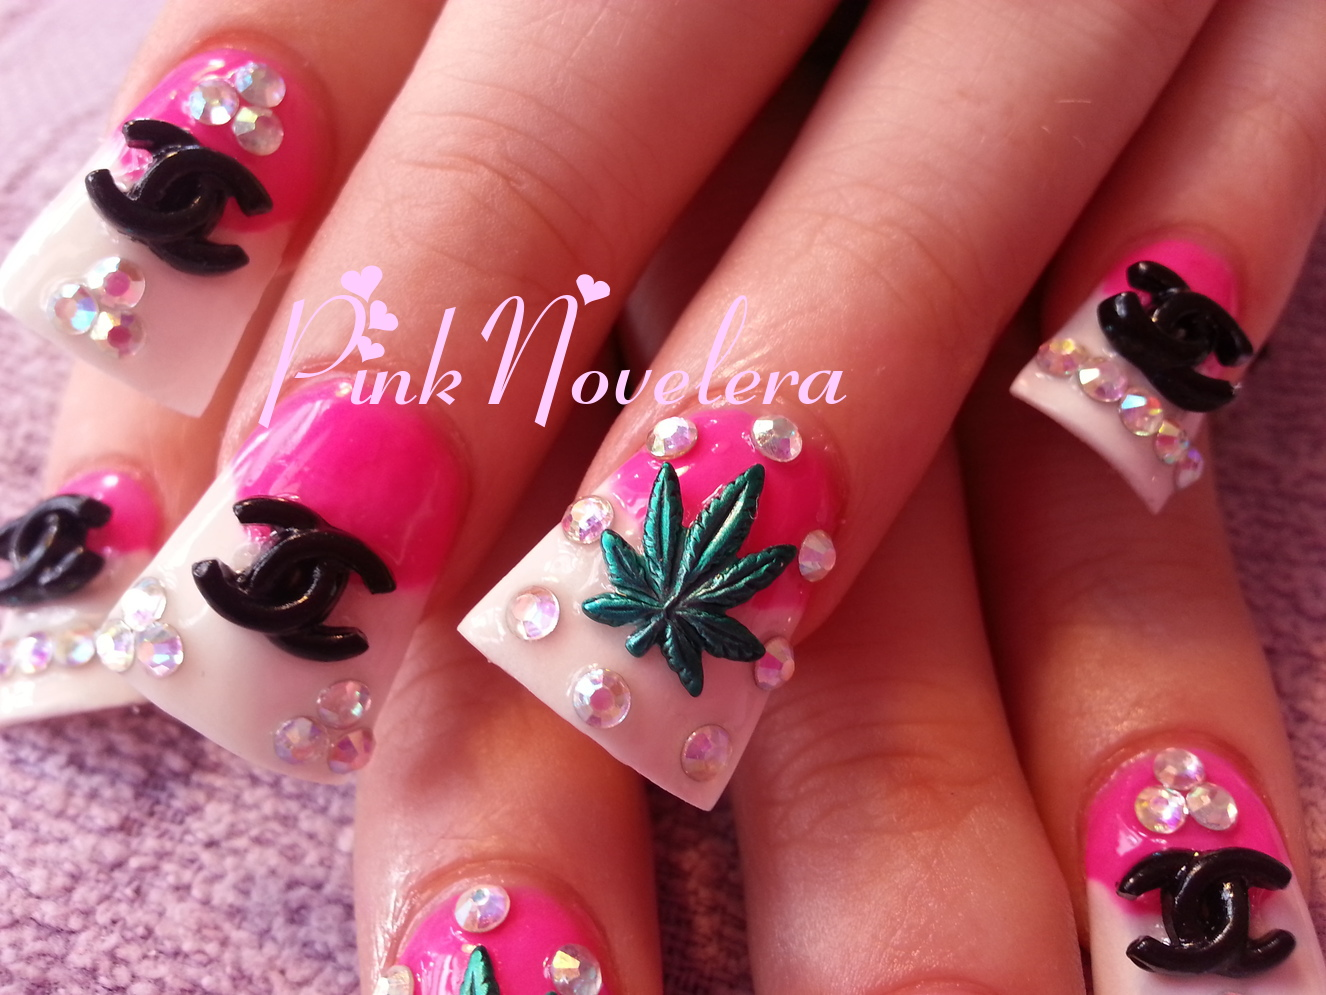 3D Weed Charms · ♥♥♥ PinkNovelera ♥♥♥ · Online Store Powered ...